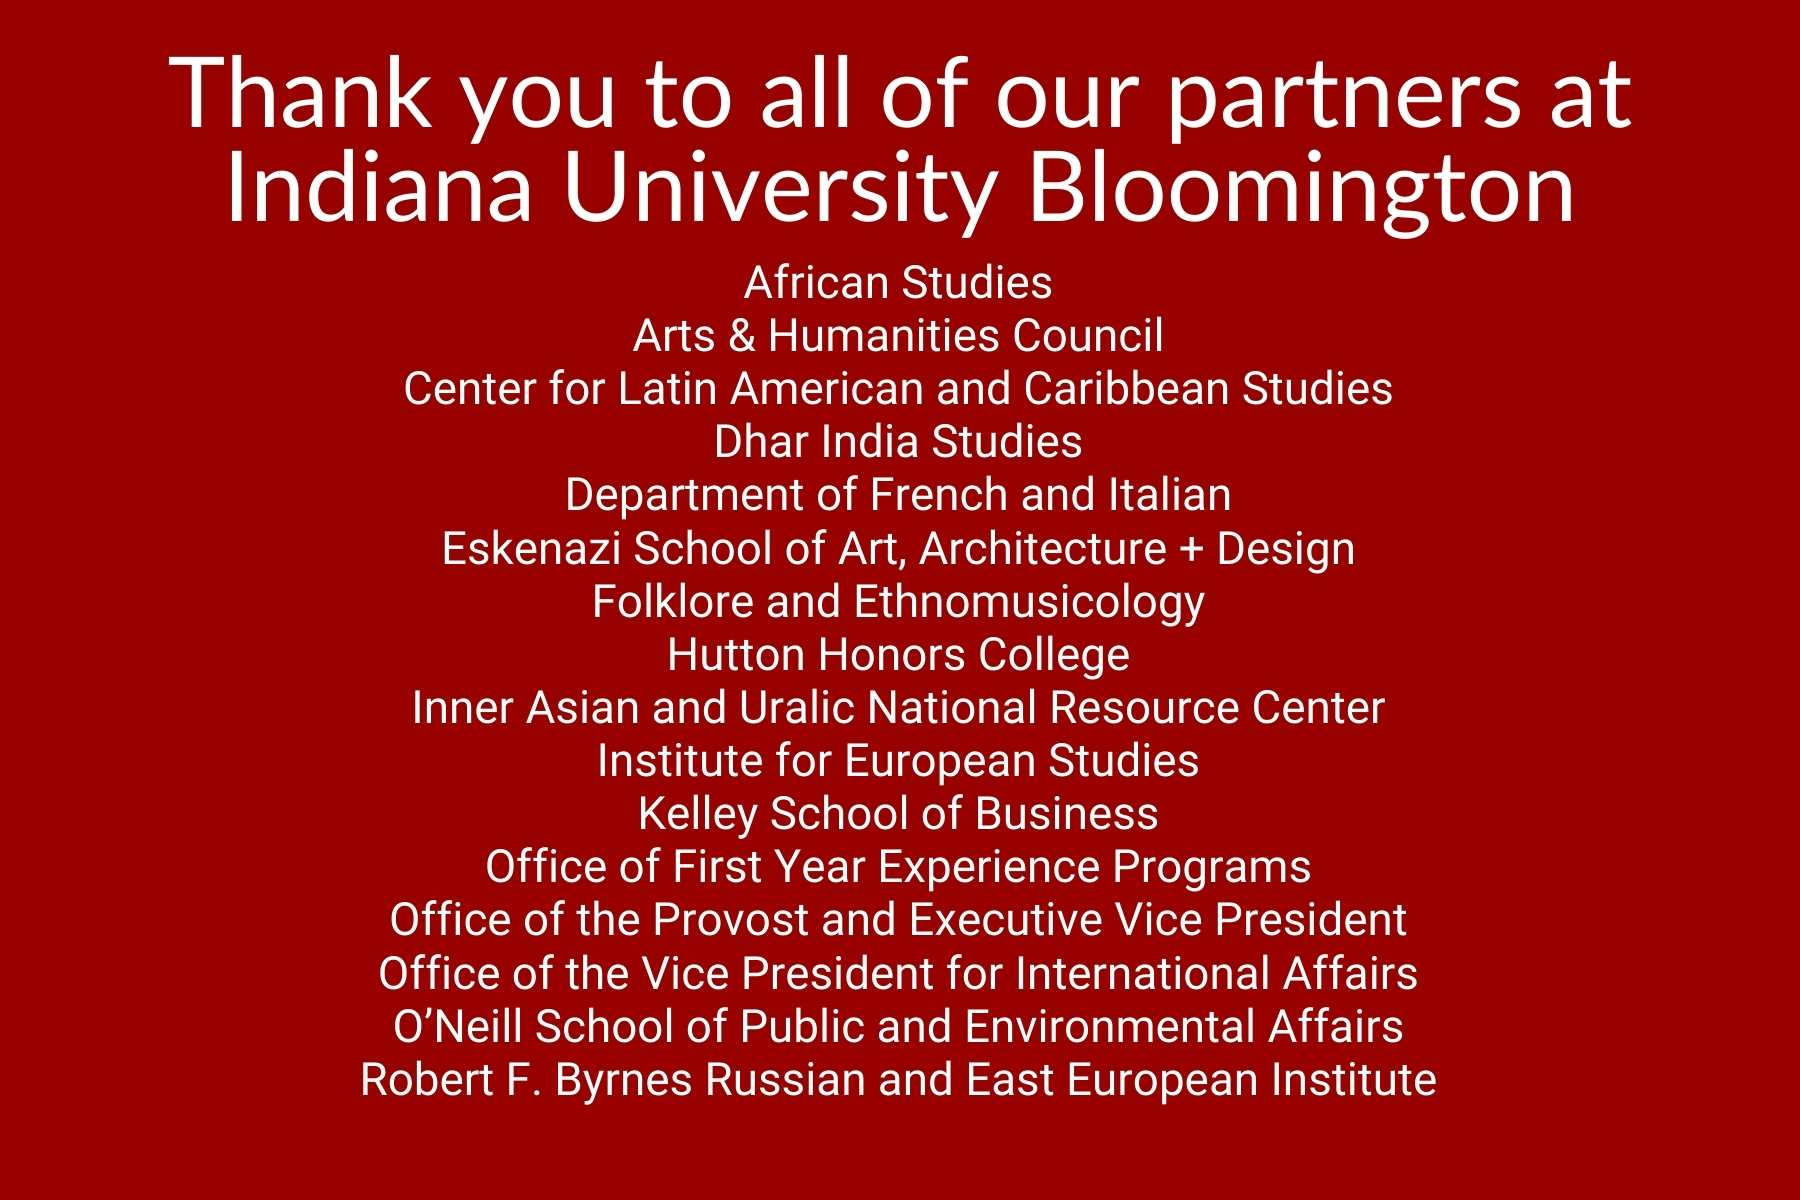 Thank you to all of our partners at Indiana University Bloomington